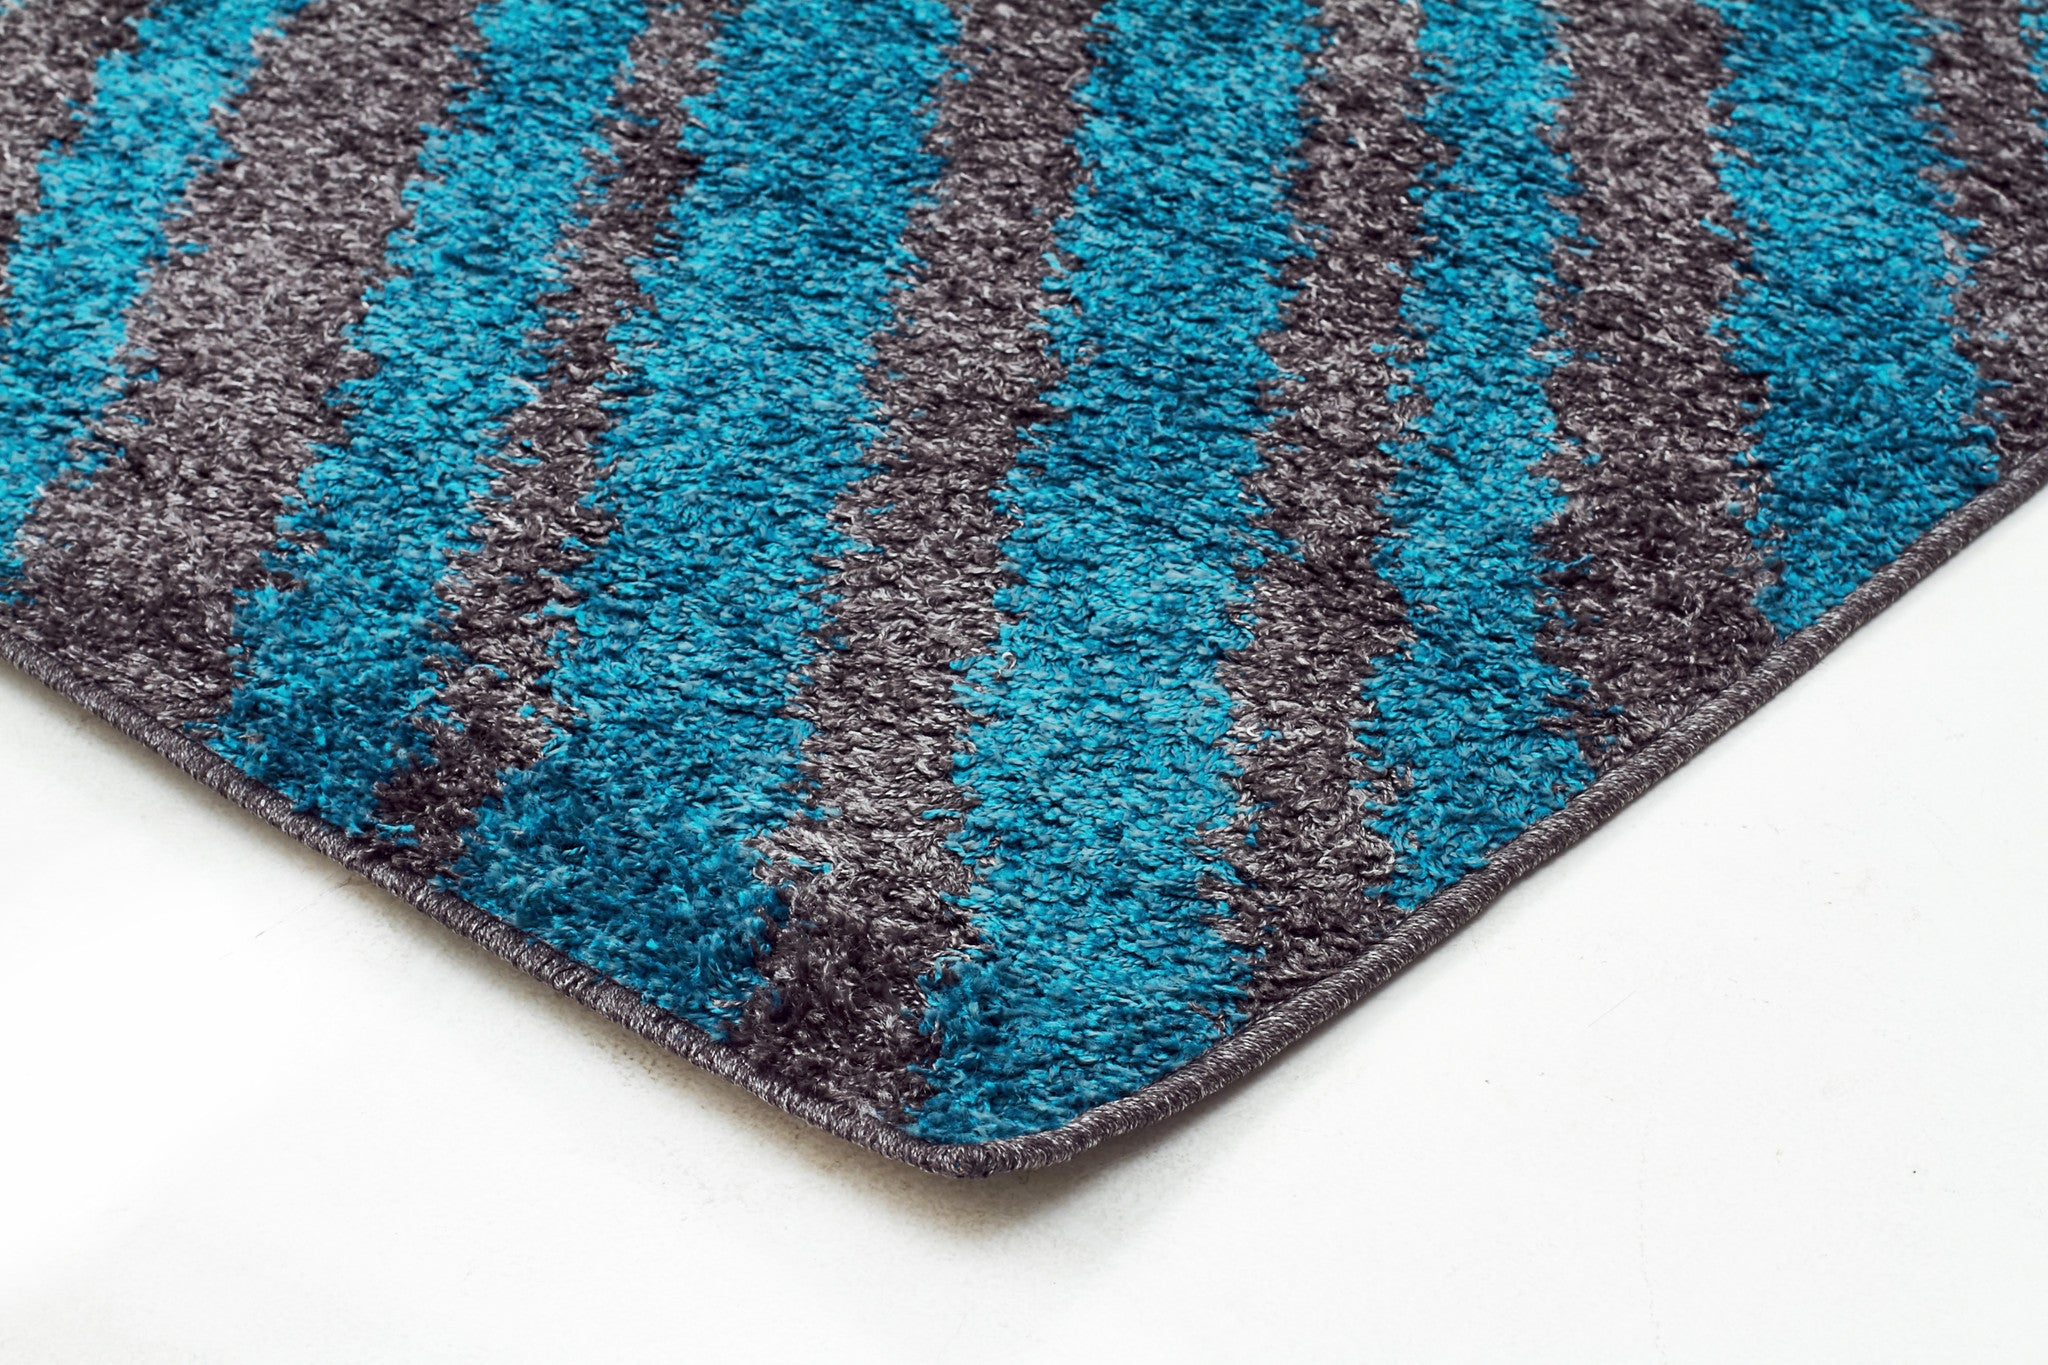 Viva 803 Shaggy Rug - Charcoal Blue